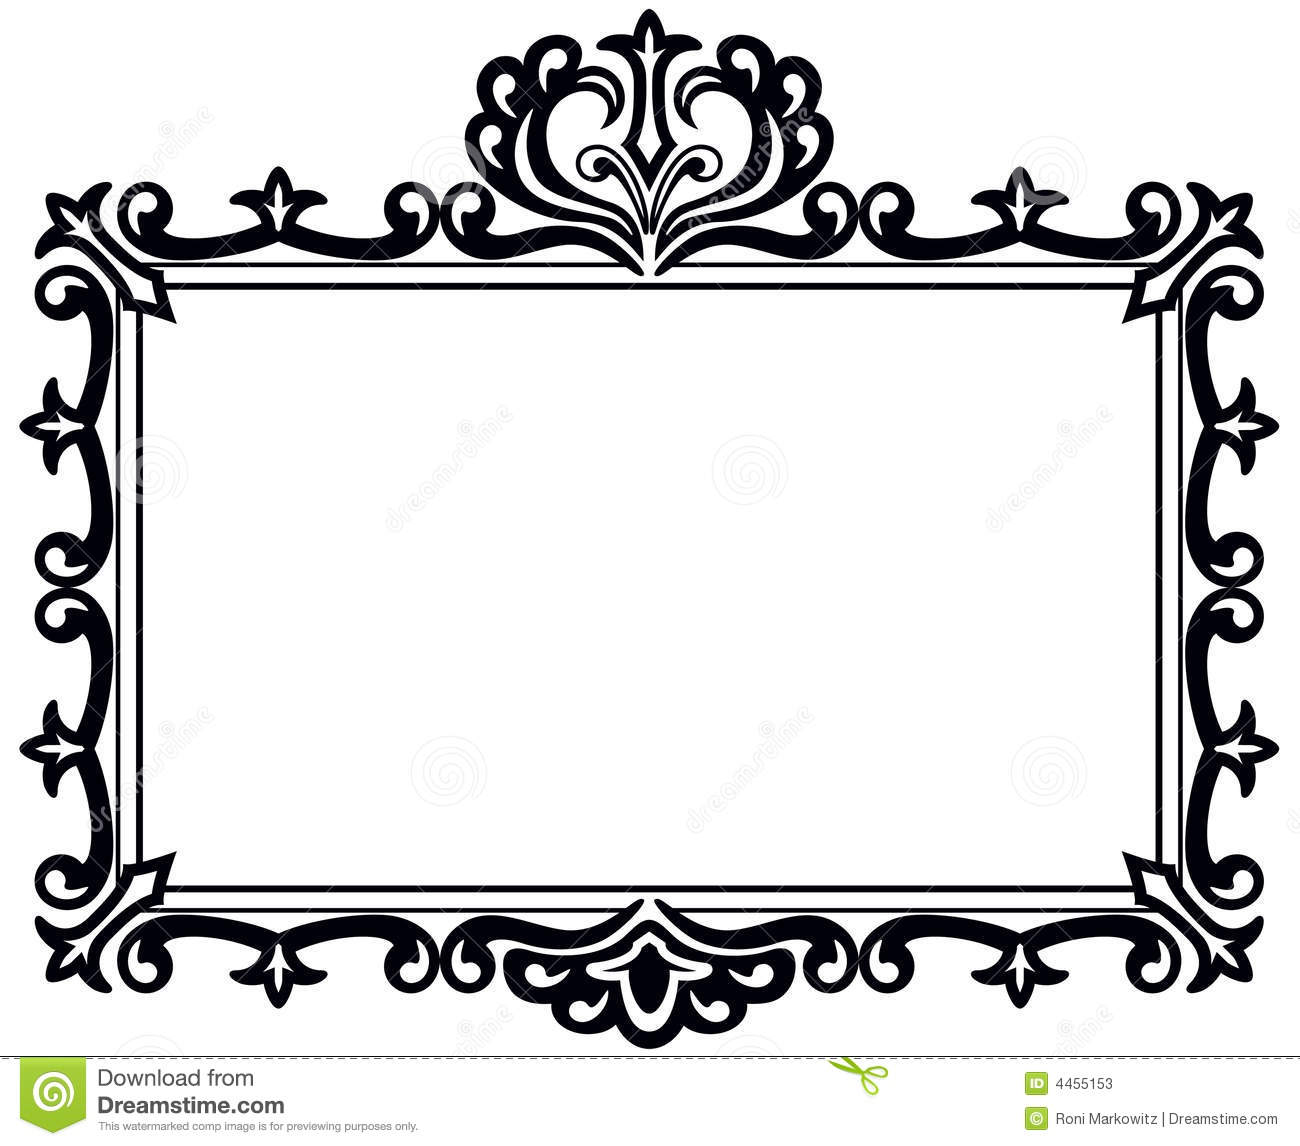 Vintage Rectangle Border Clipart - Clipart Suggest